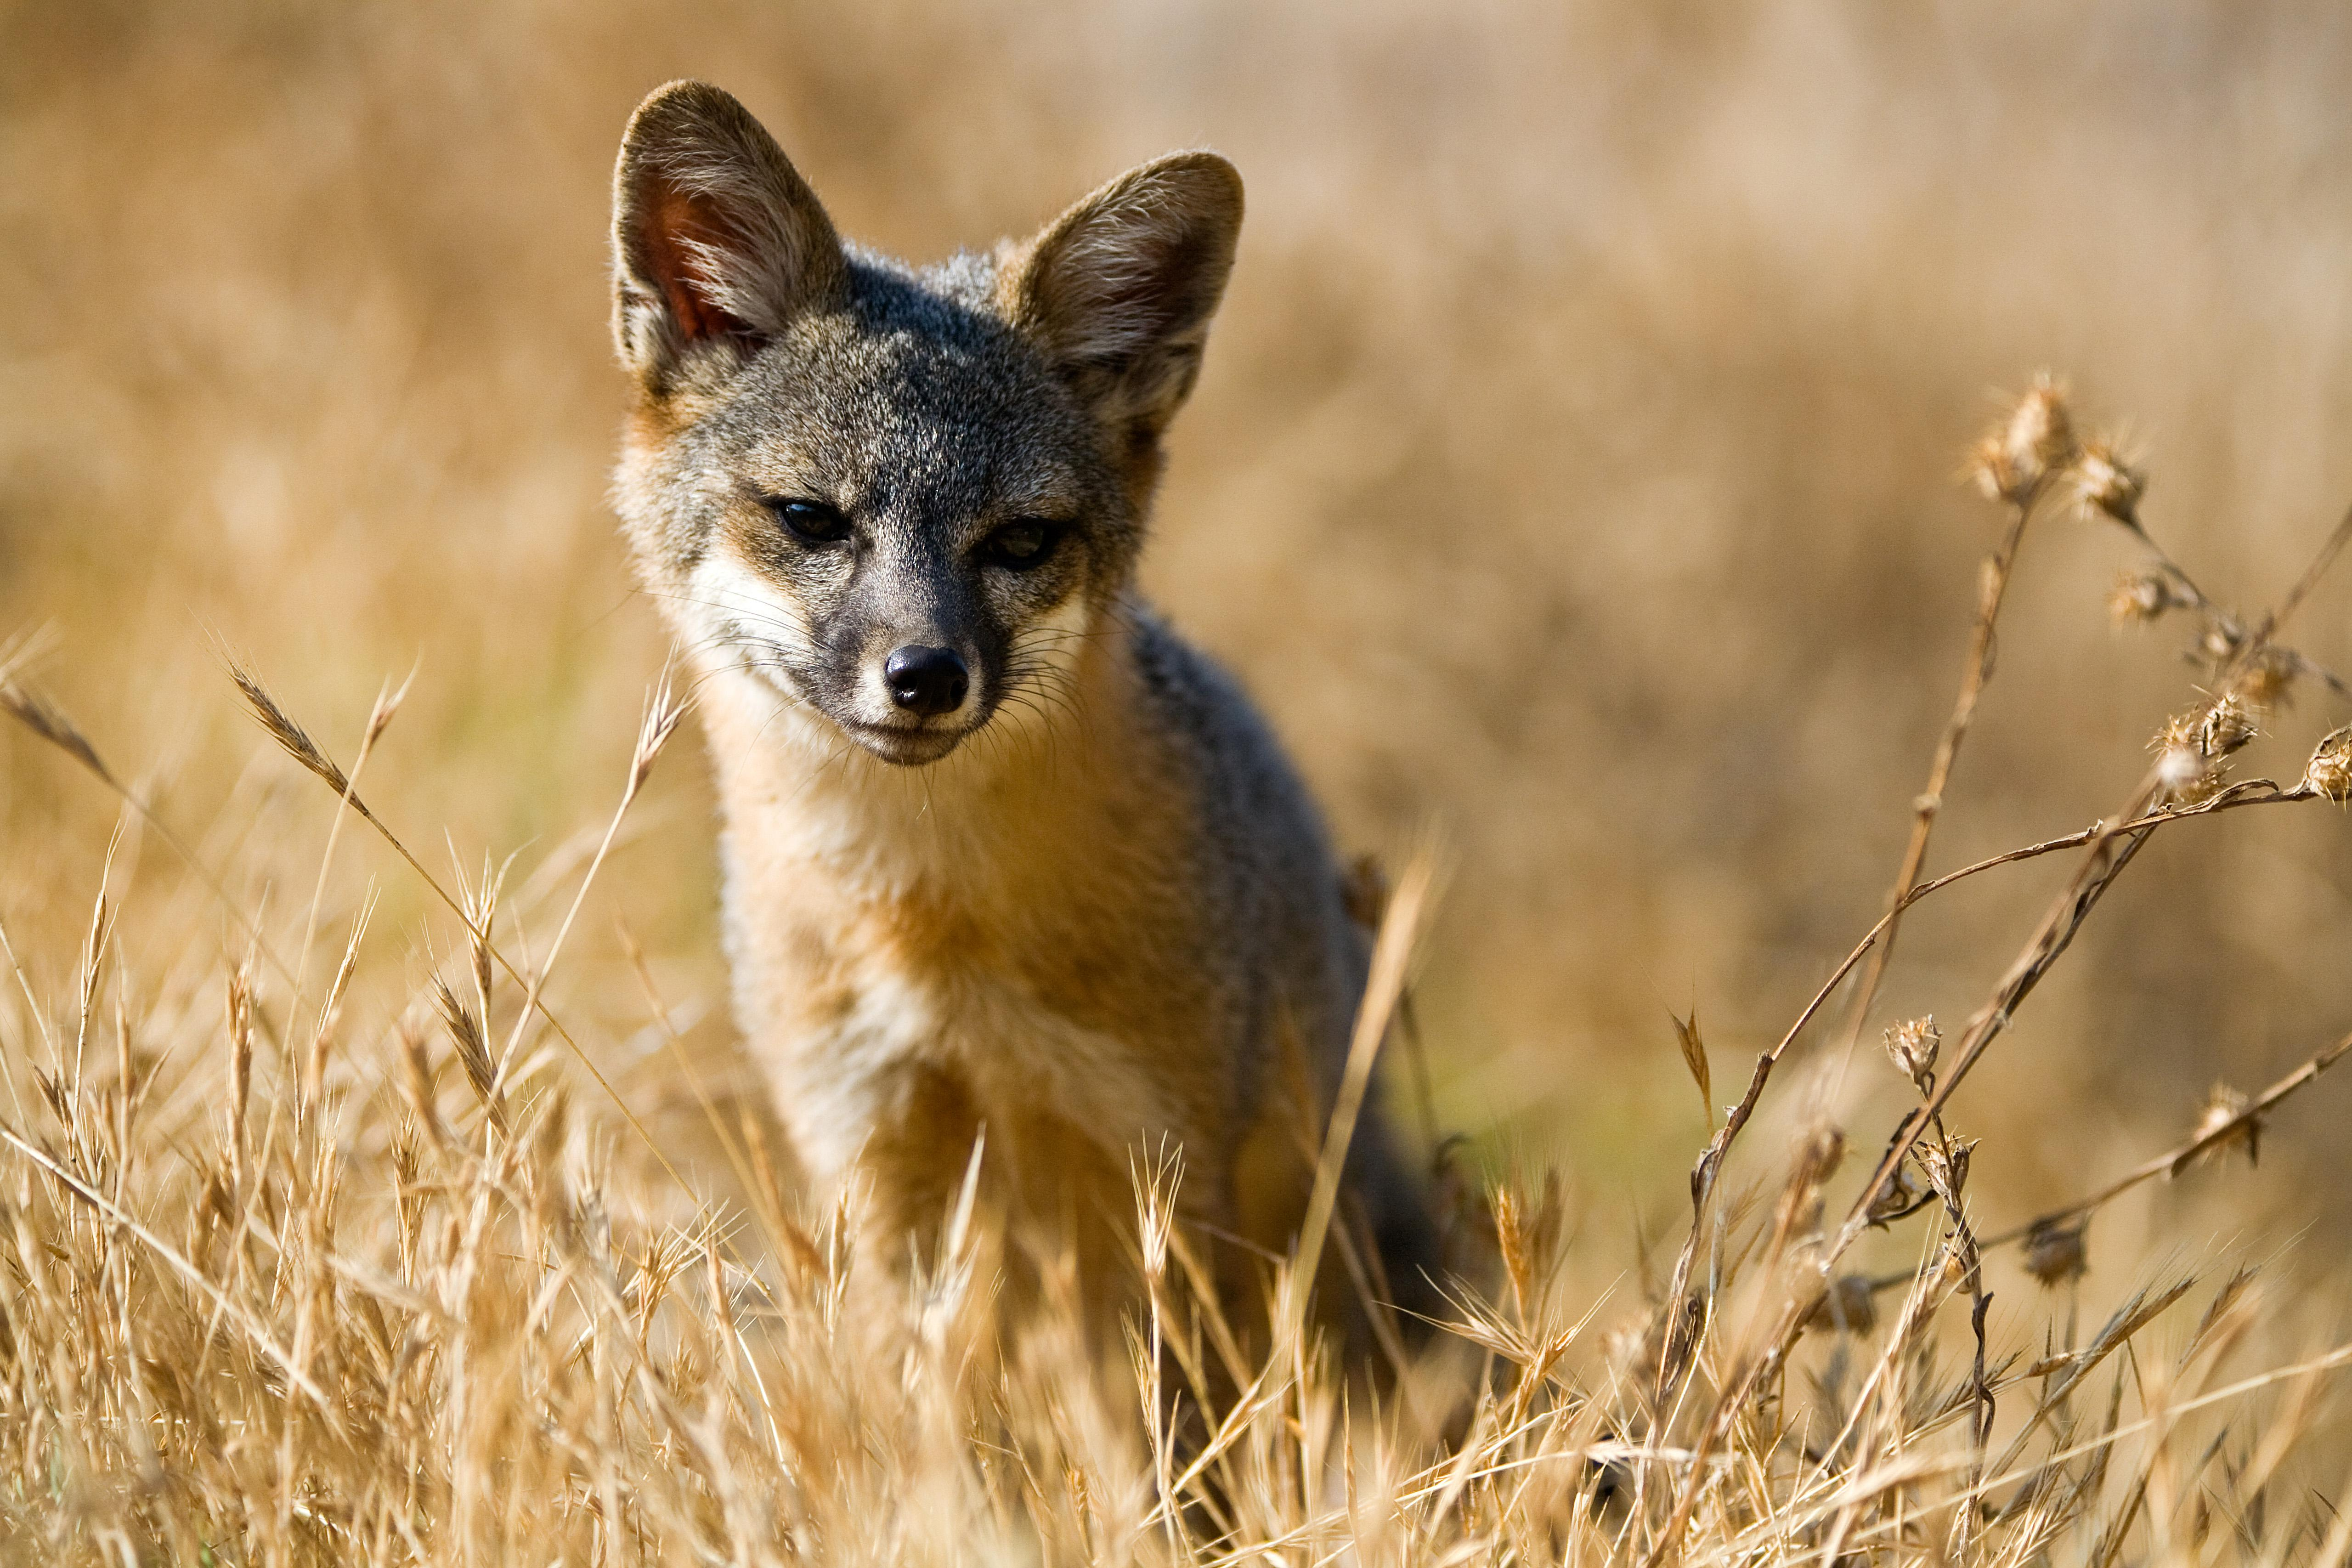 A Santa Cruz Island fox with tilted head